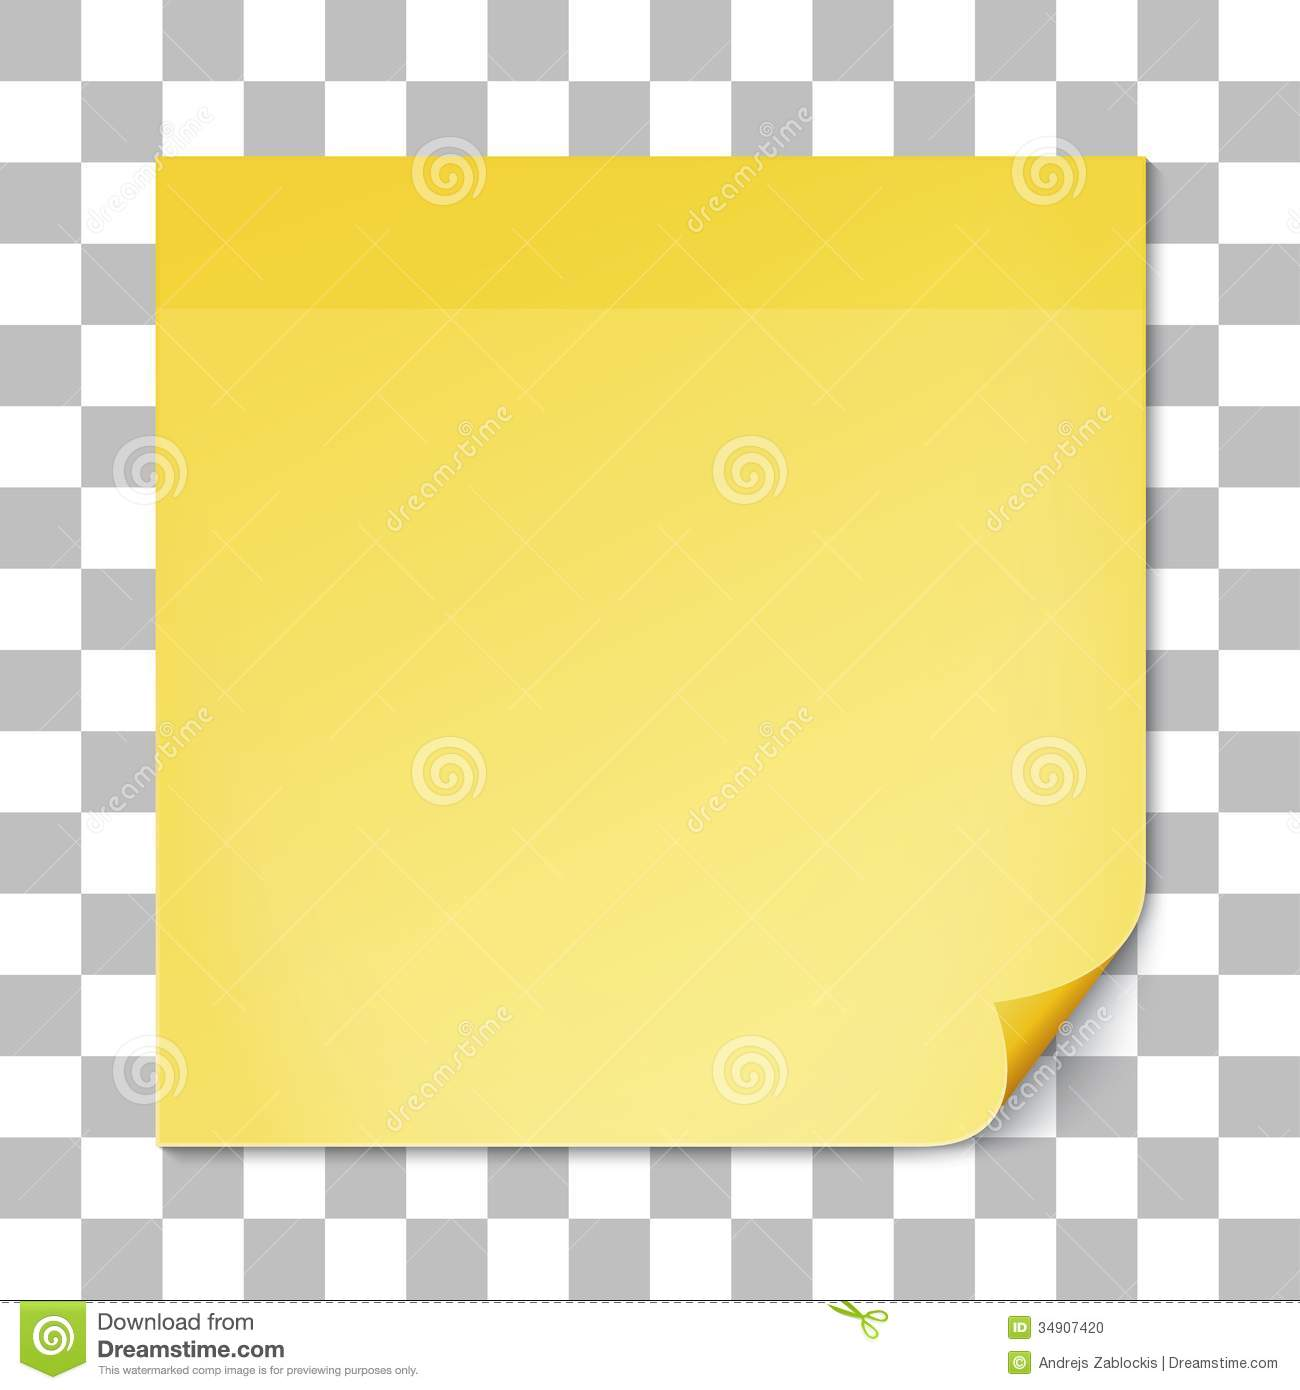 Free vector graphic sticky note note info paper free image on - Royalty Free Stock Photo Background Note